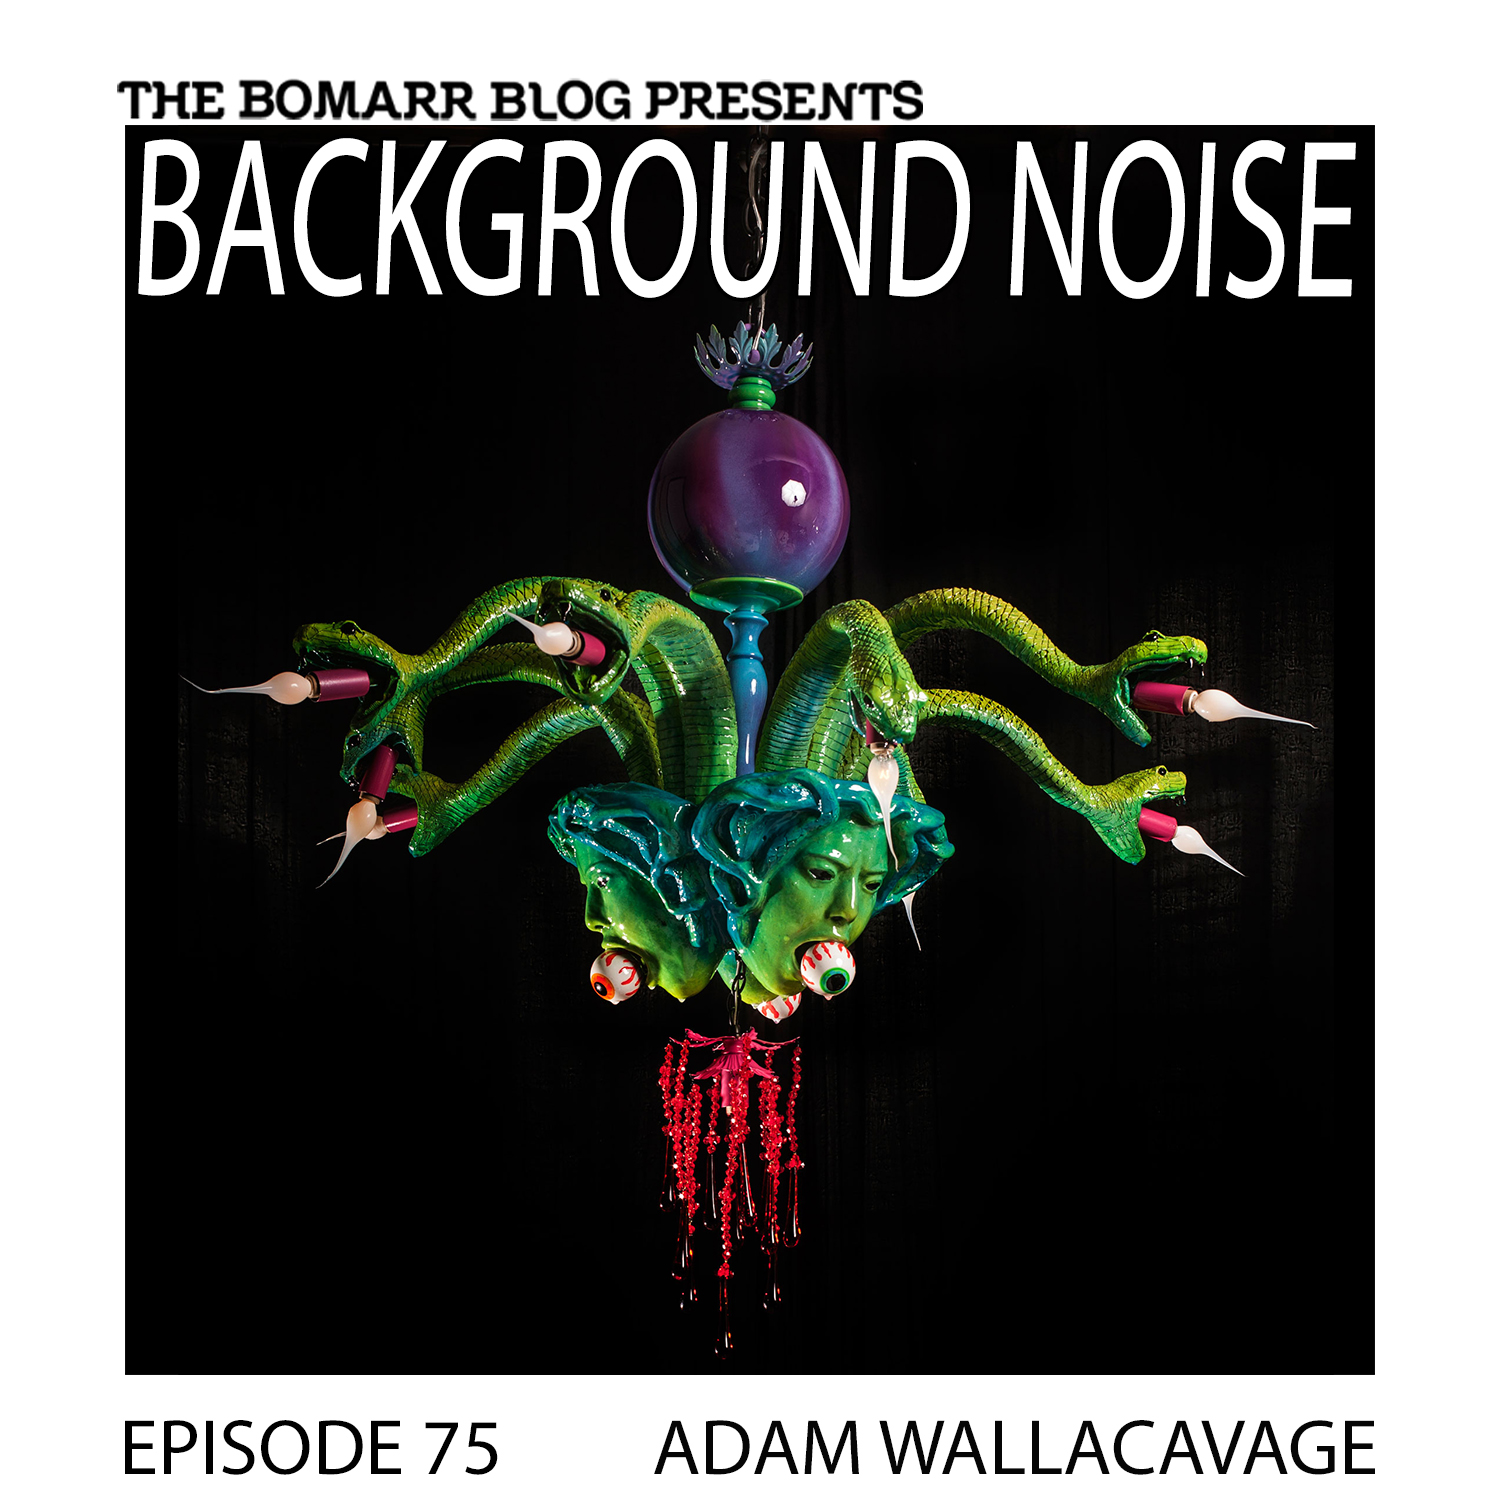 THE BACKGROUND NOISE PODCAST SERIES FOCUSES ON THE MUSIC THAT ARTISTS LISTEN TO WHEN THEY WORK, WHAT MUSIC INSPIRES THEM, OR JUST MUSIC THEY LIKE. THIS WEEK, IN EPISODE 75, THE FOCUS IS ON ARTIST ADAM WALLACAVAGE